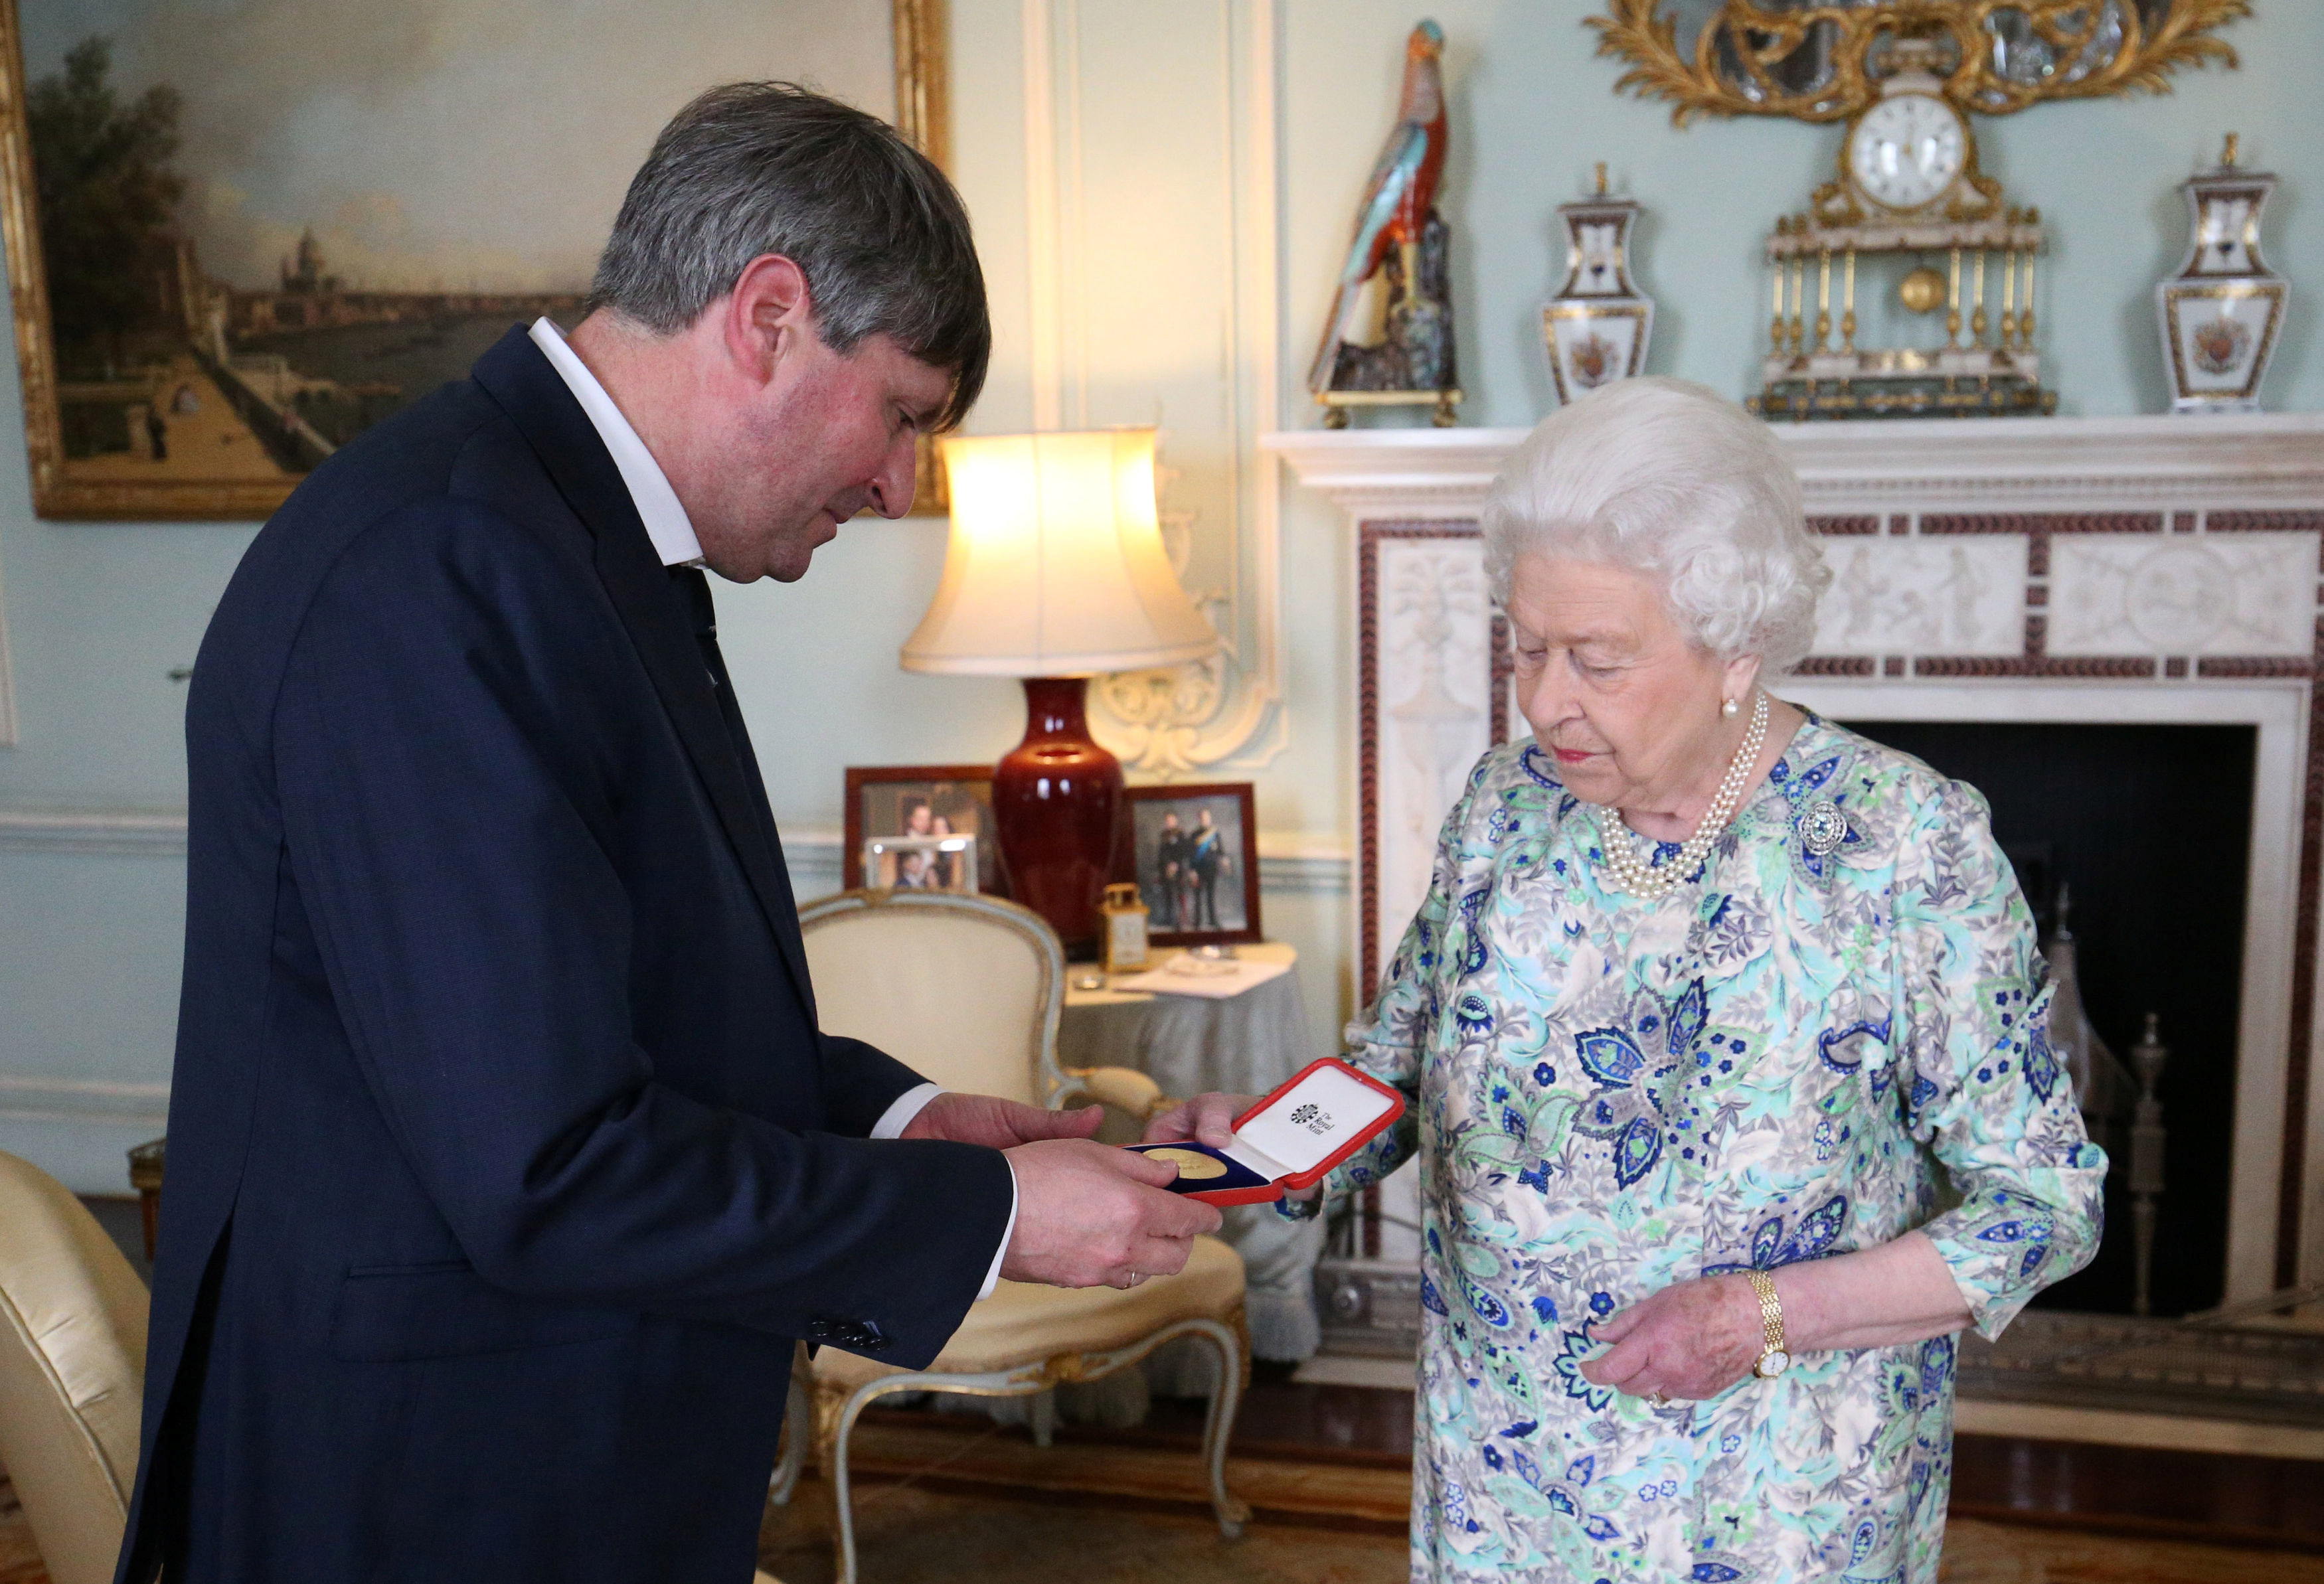 Queen Elizabeth presents Simon Armitage with The Queen's Gold Medal for Poetry upon his appointment as Poet Laureate during an audience at Buckingham Palace, London, Britain May 29, 2019.